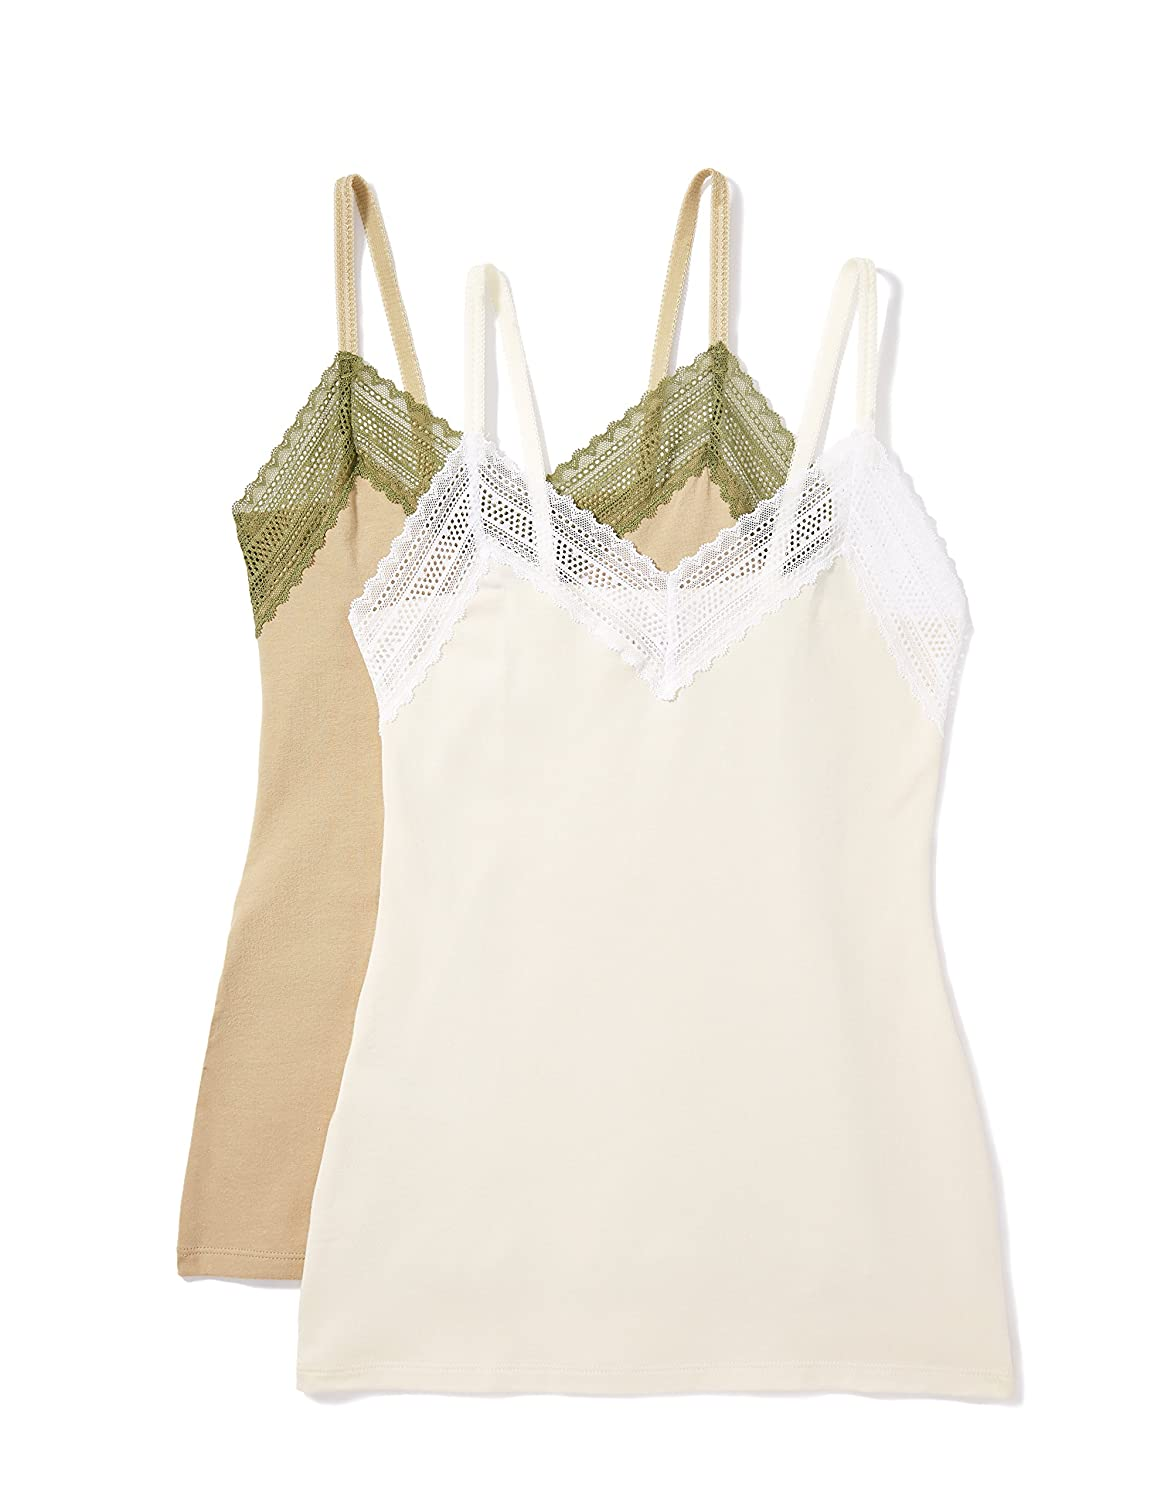 Multicolore Cream//Khaki Iris /& Lilly Tank Cotton Canottiera Donna X-Large